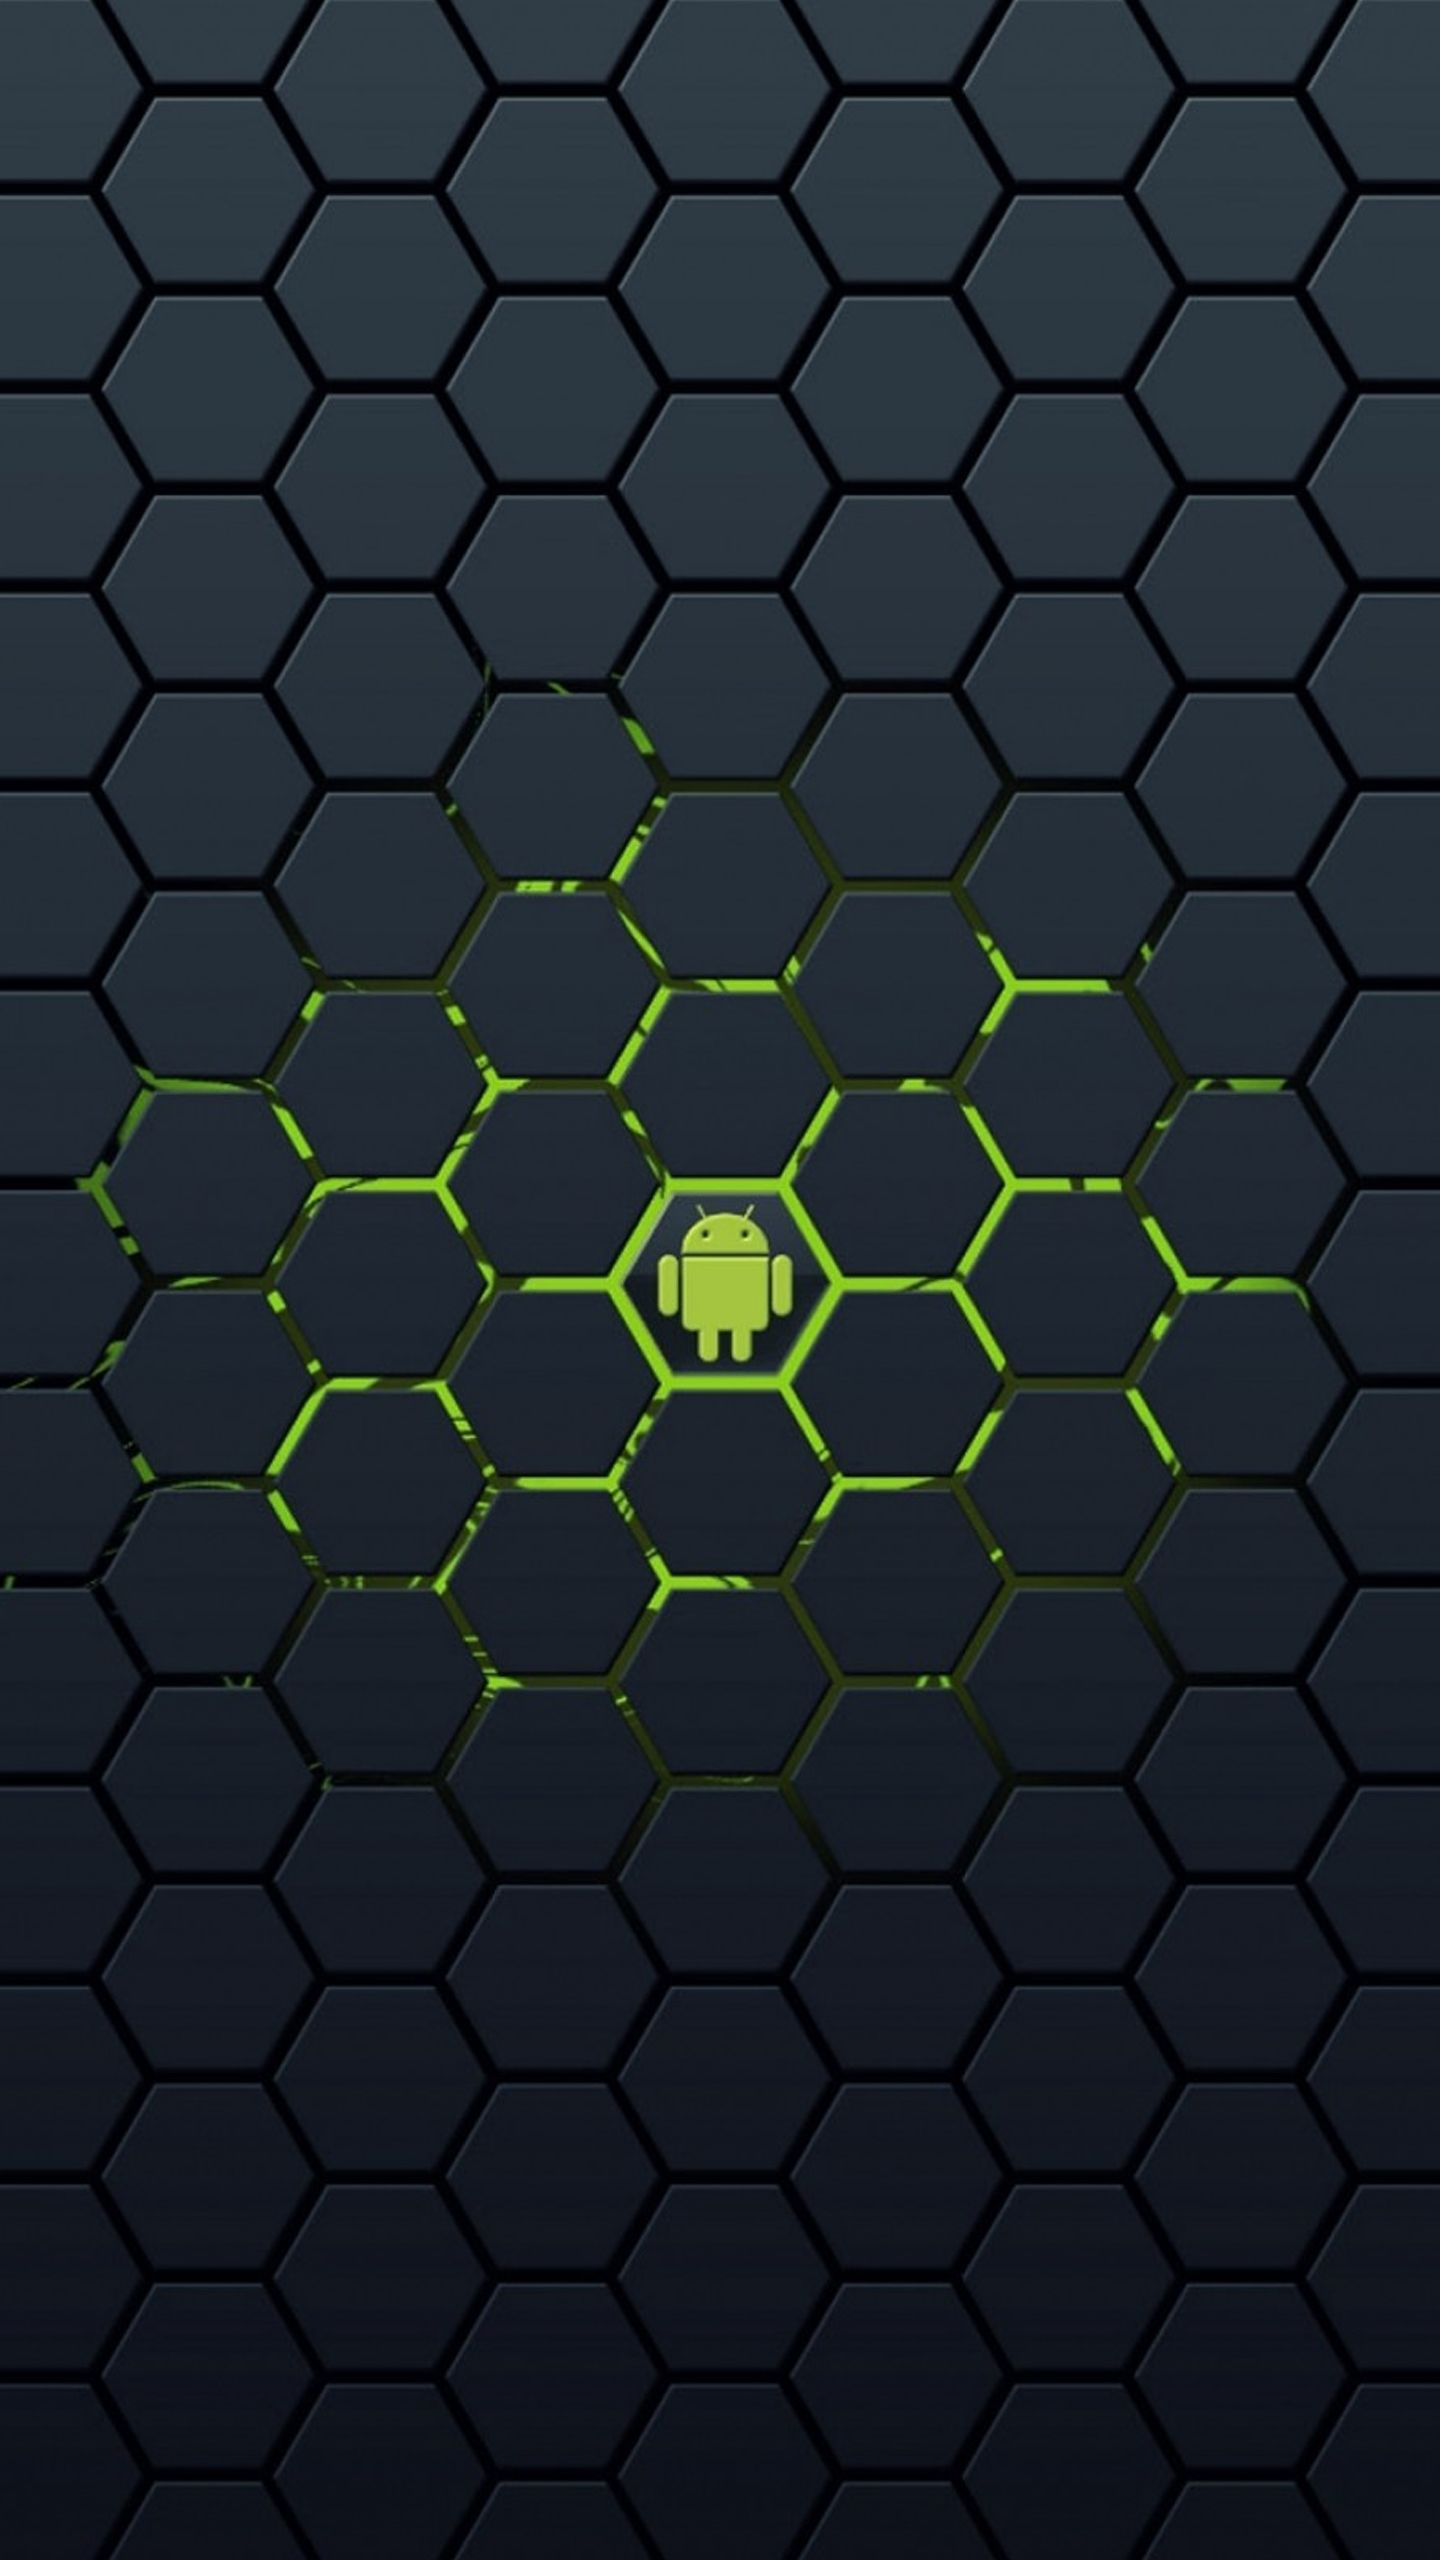 1440x2560 Blackberry Priv Wallpapers: Fills the grid Android Wallpapers